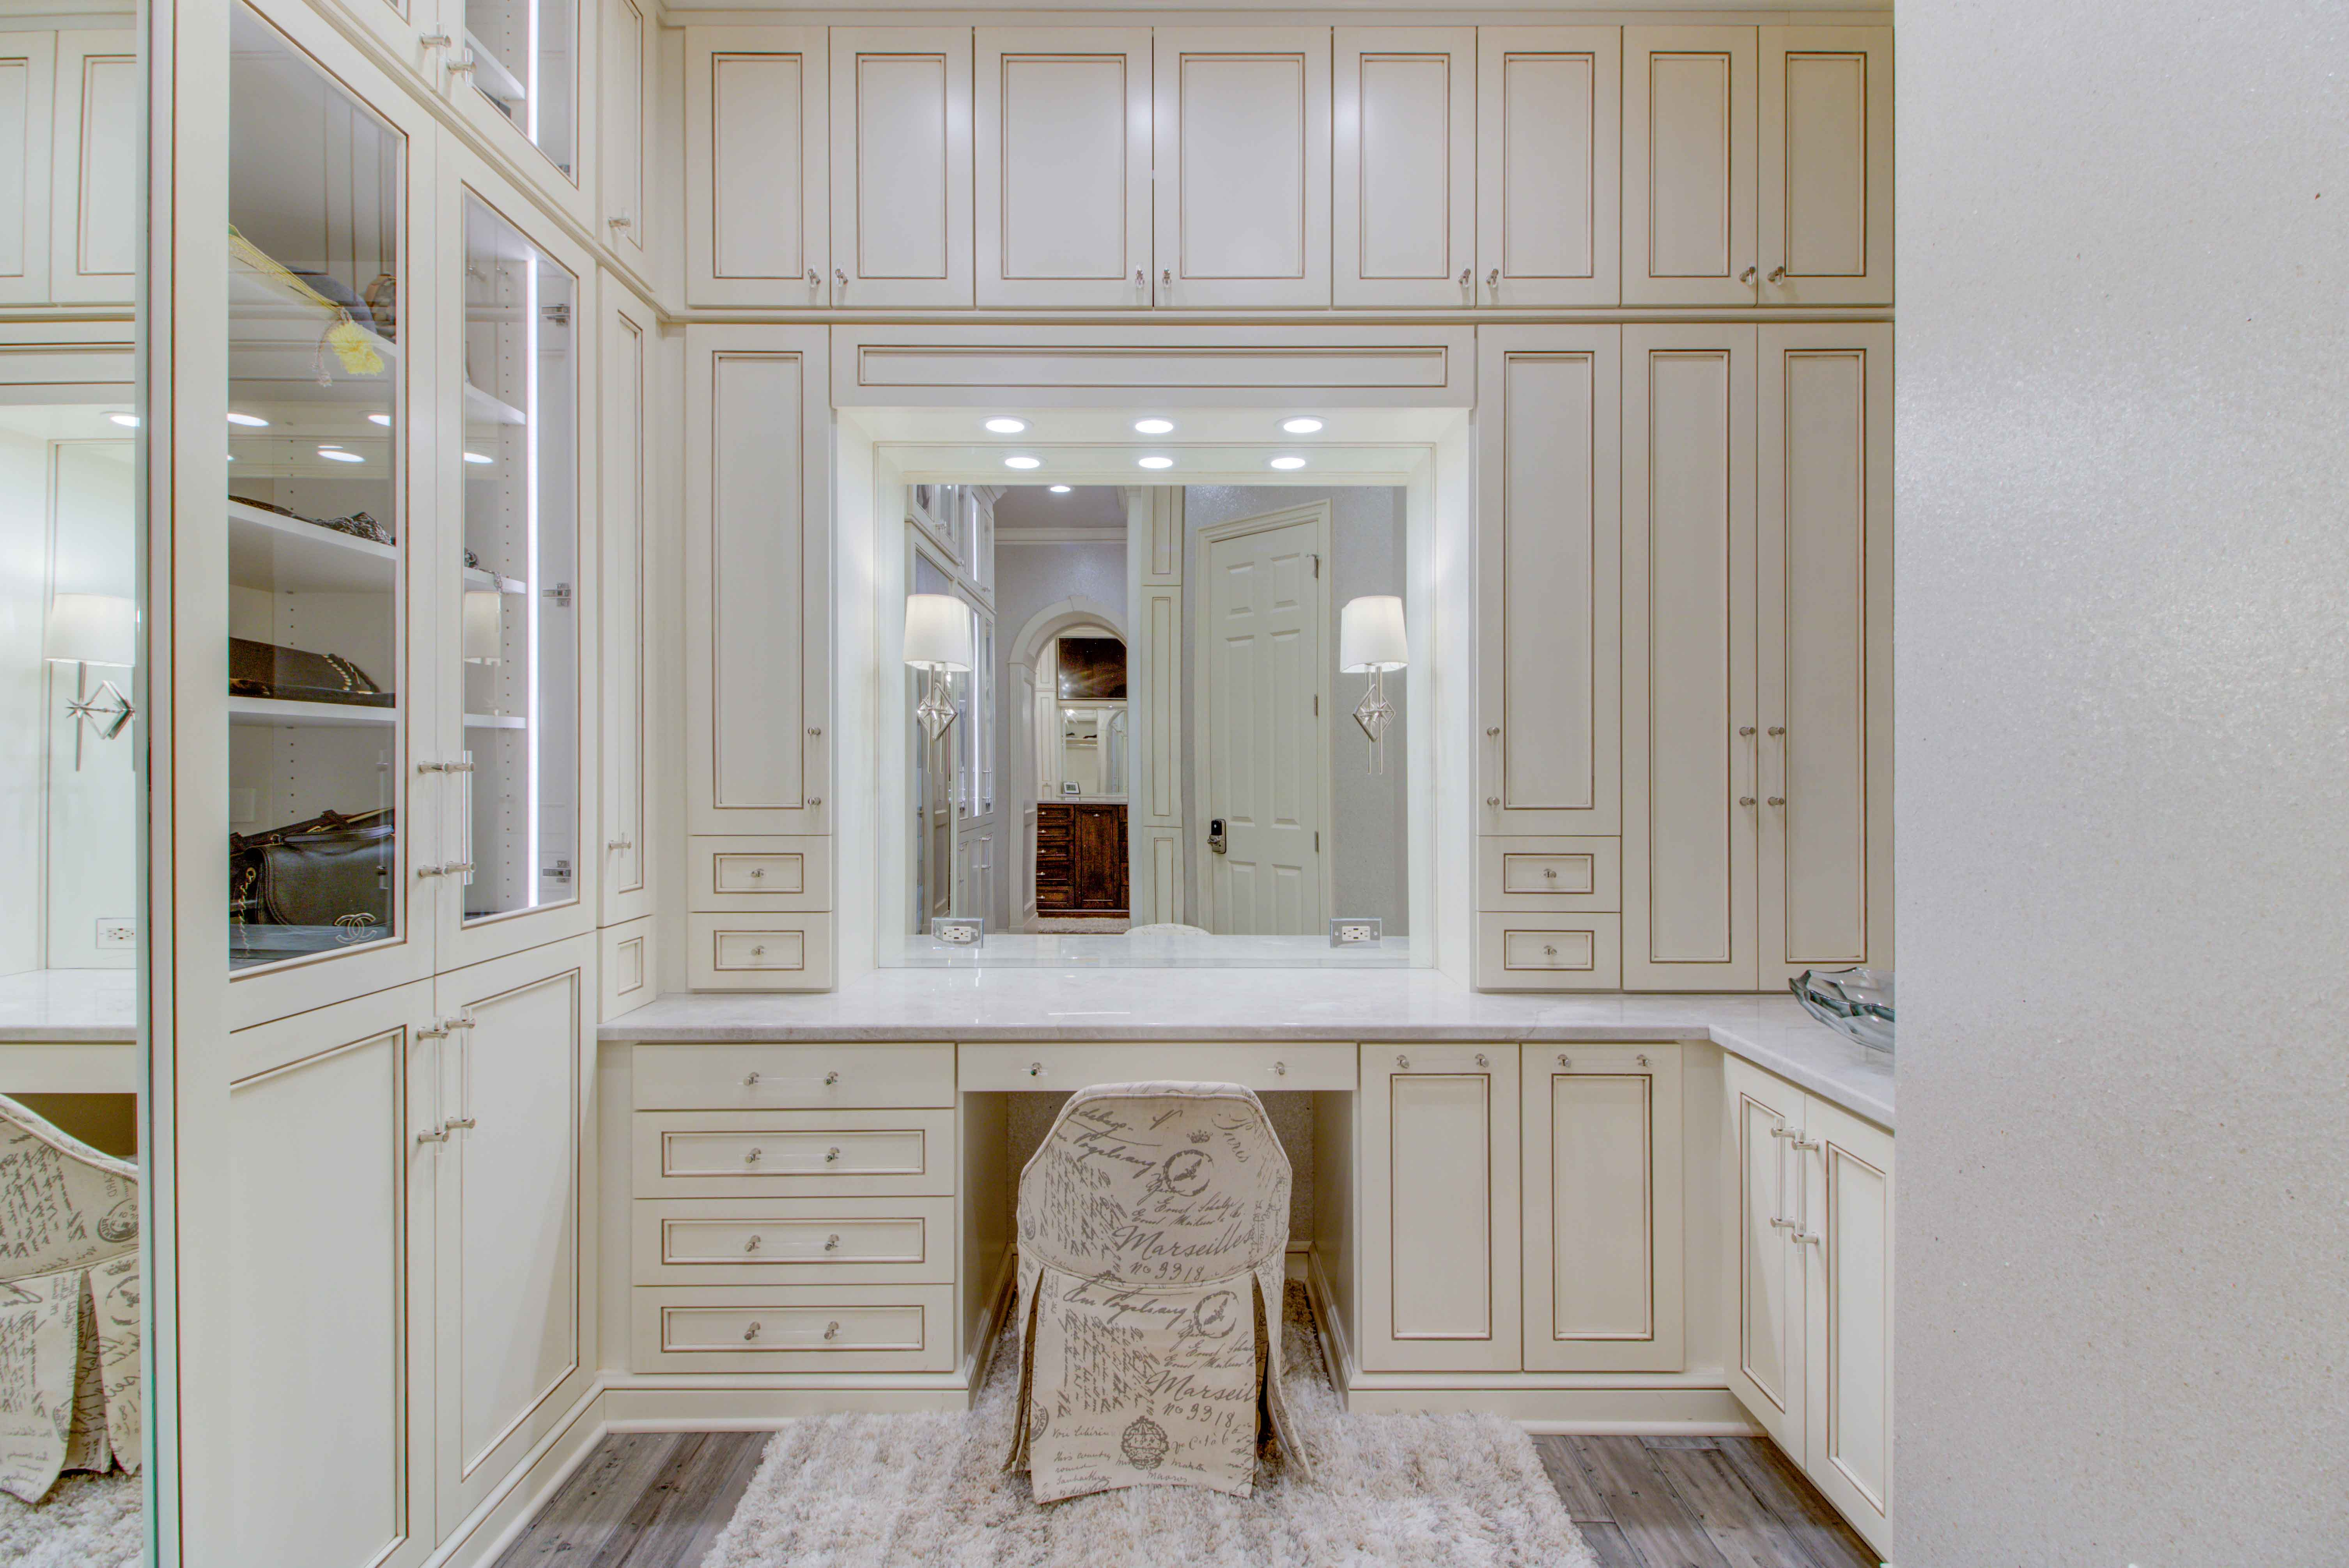 well hanger closet white pictures and decors ideas modern polished shelves added drawers walk sumptuous minimalist organizers open clothes as design storage with rod inspiration master designs charming noble in